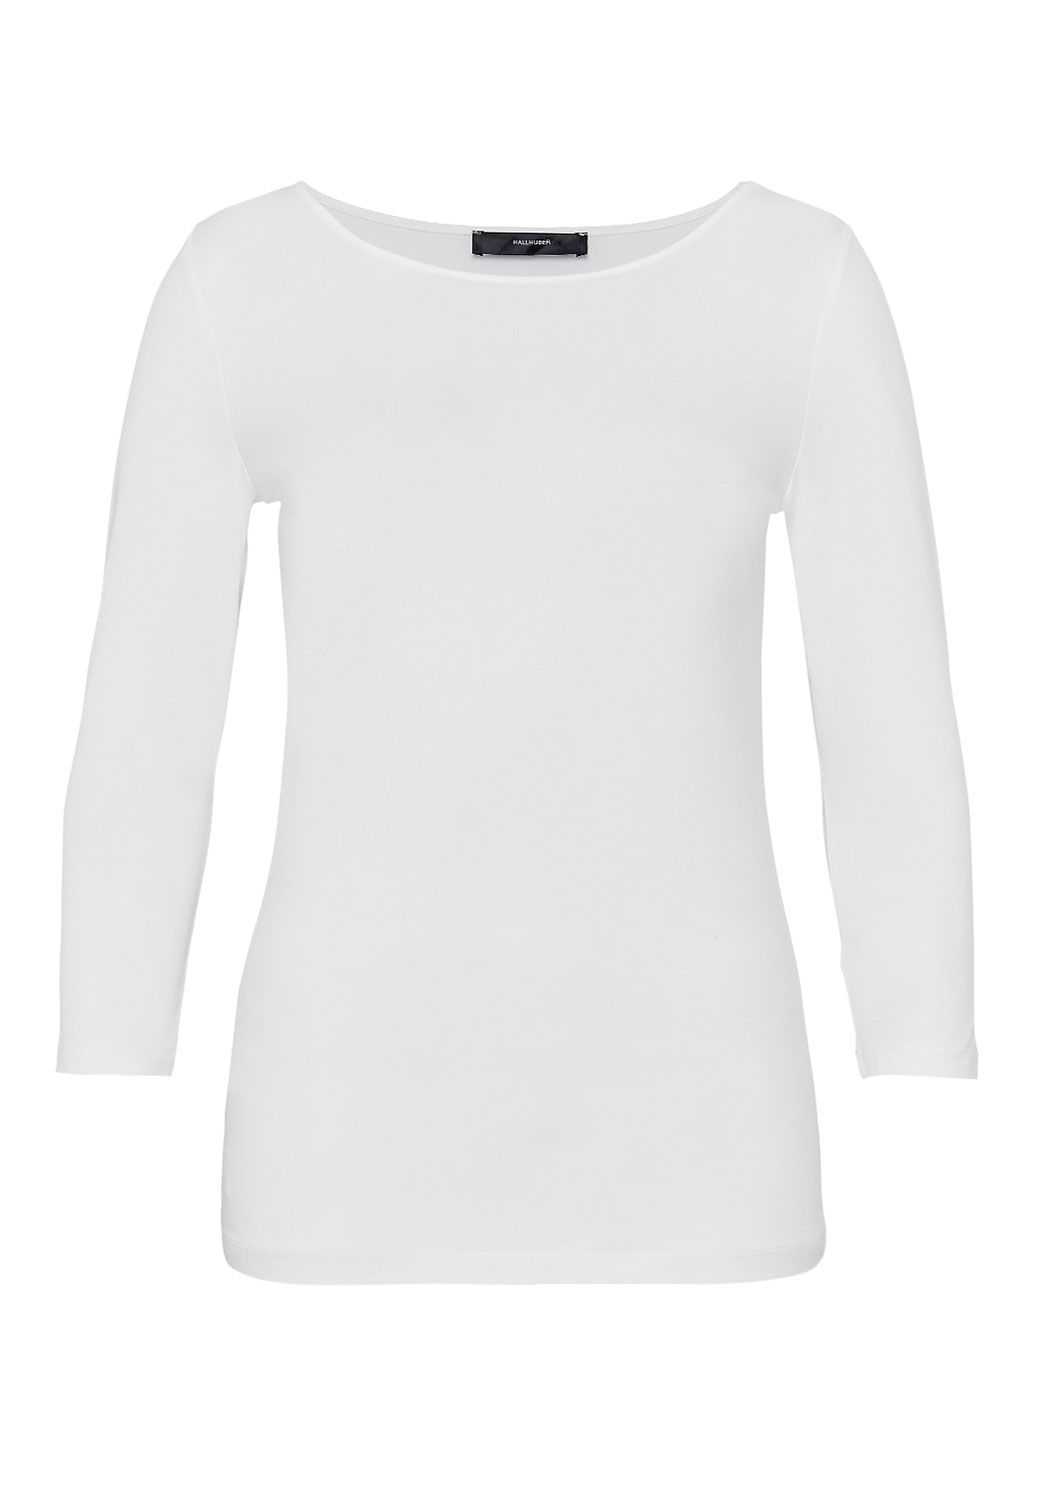 Hallhuber Boat Neck Top, White